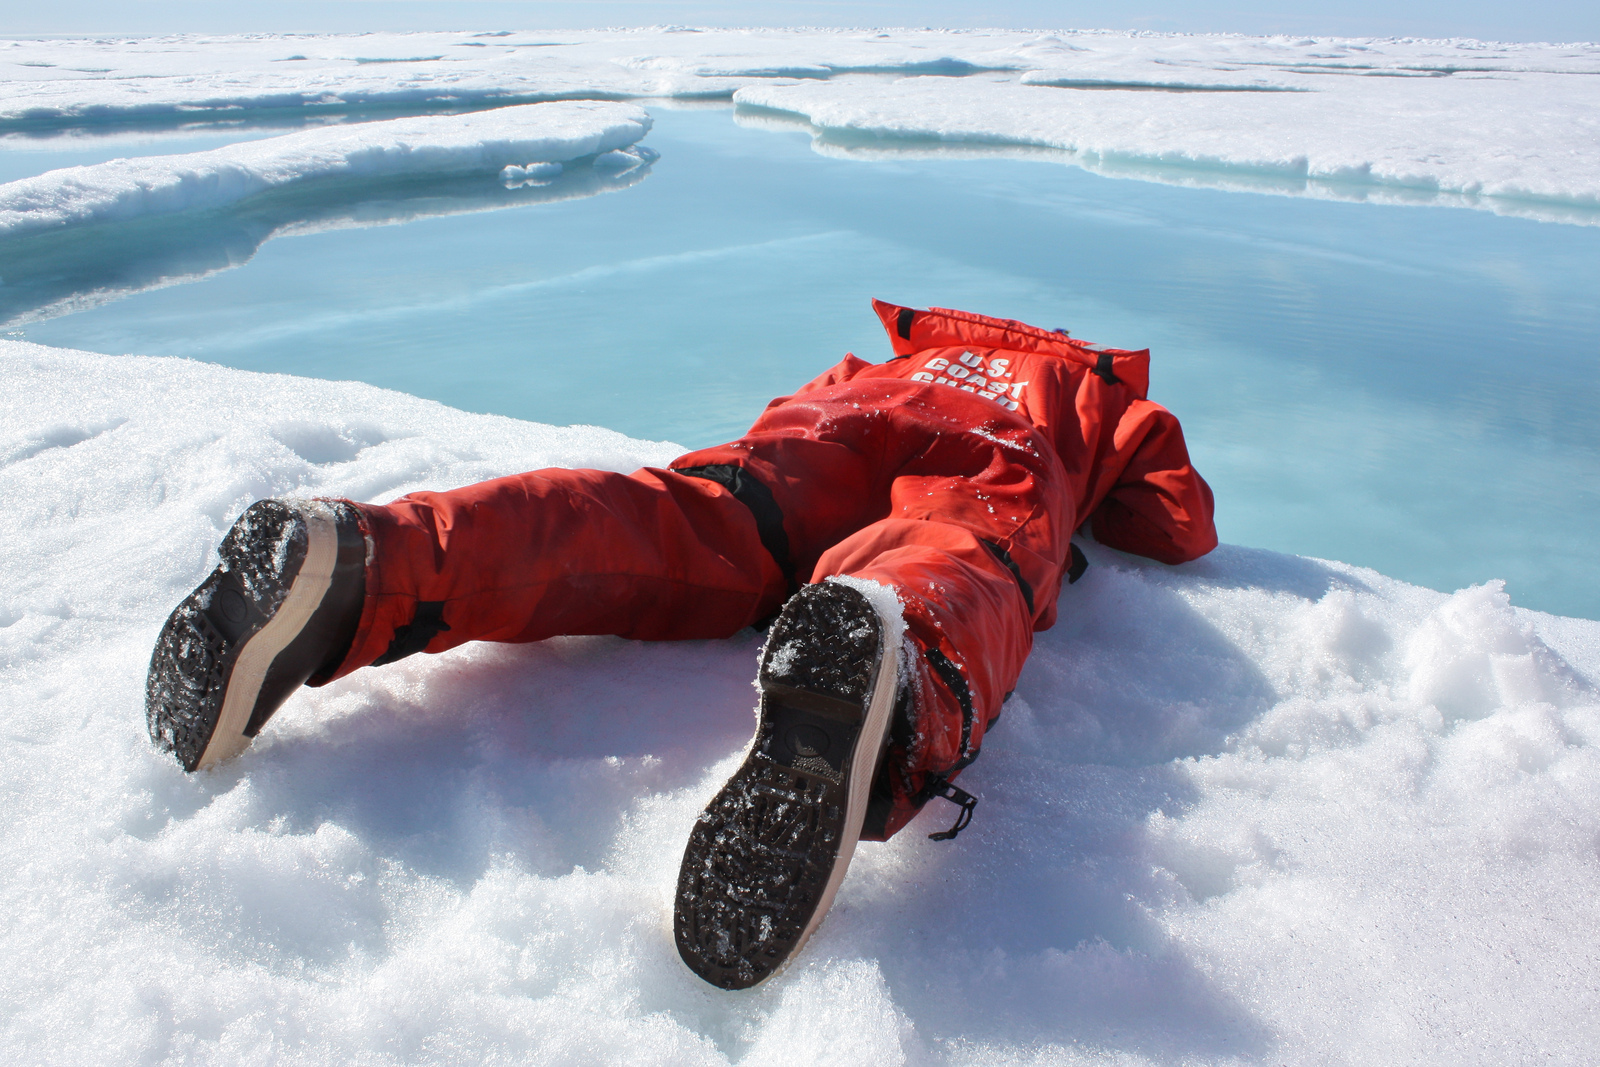 Photograph of a researcher sipping water from a sea ice melt pond